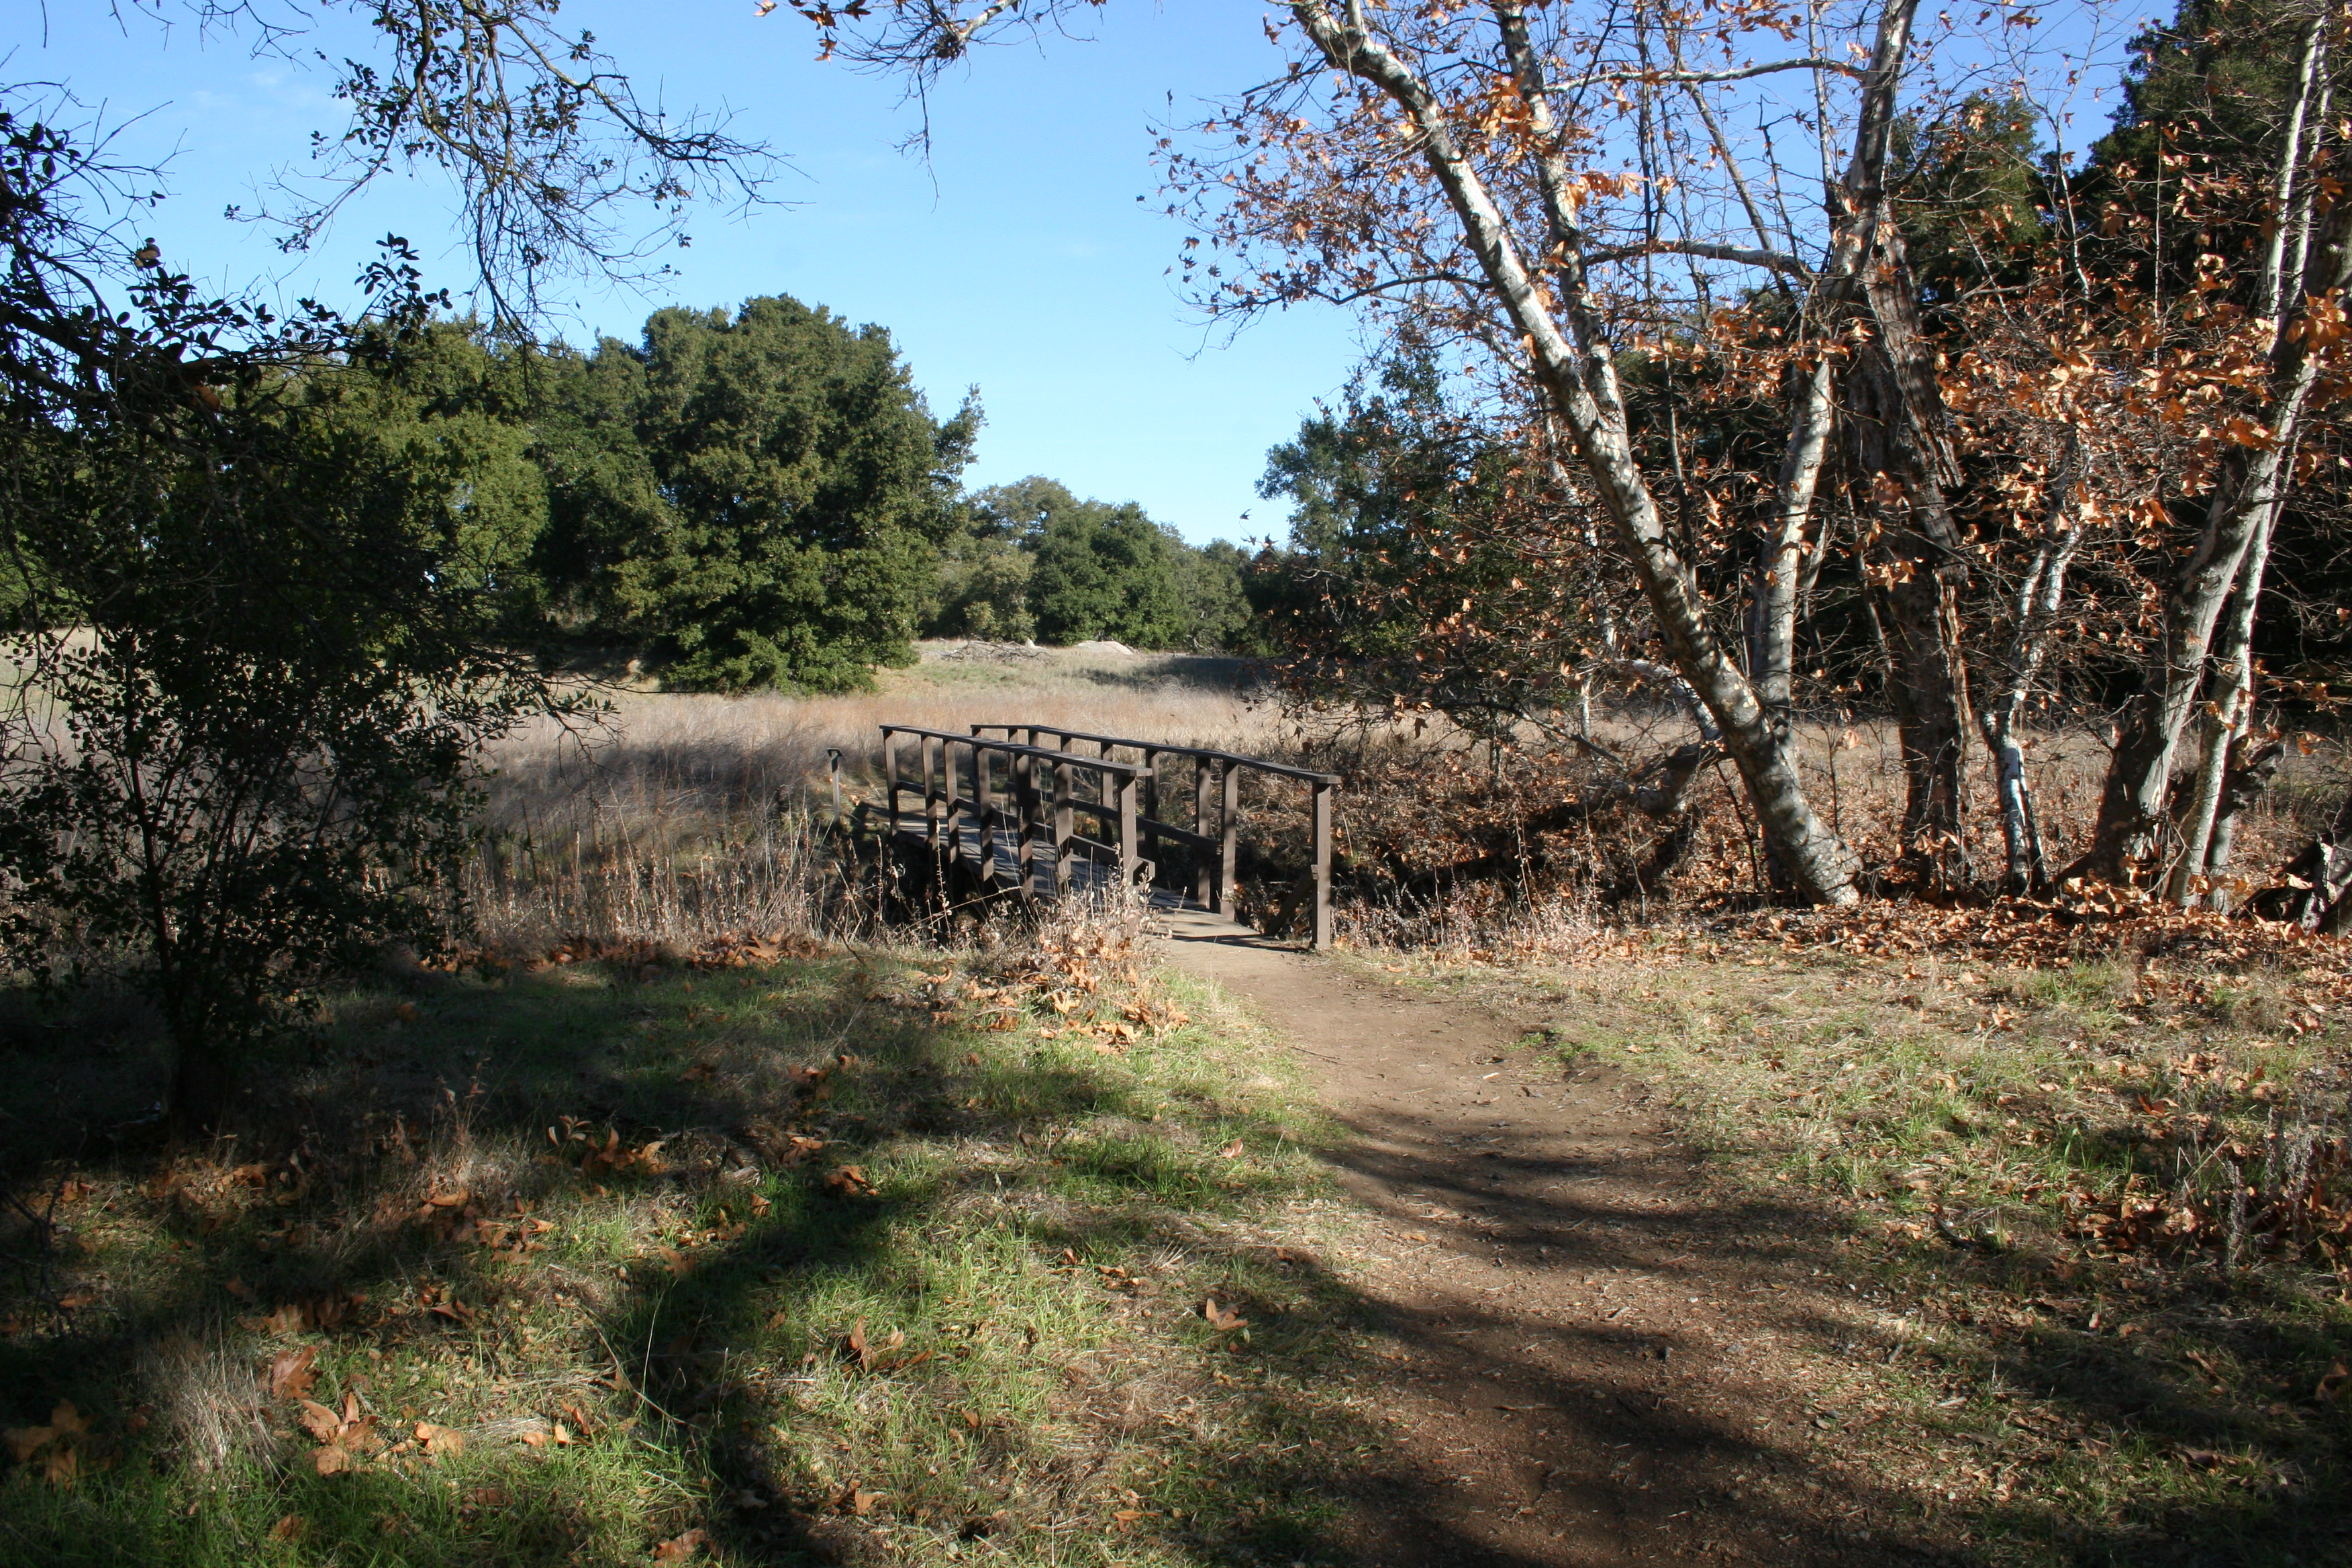 A bridge over the vernal pools